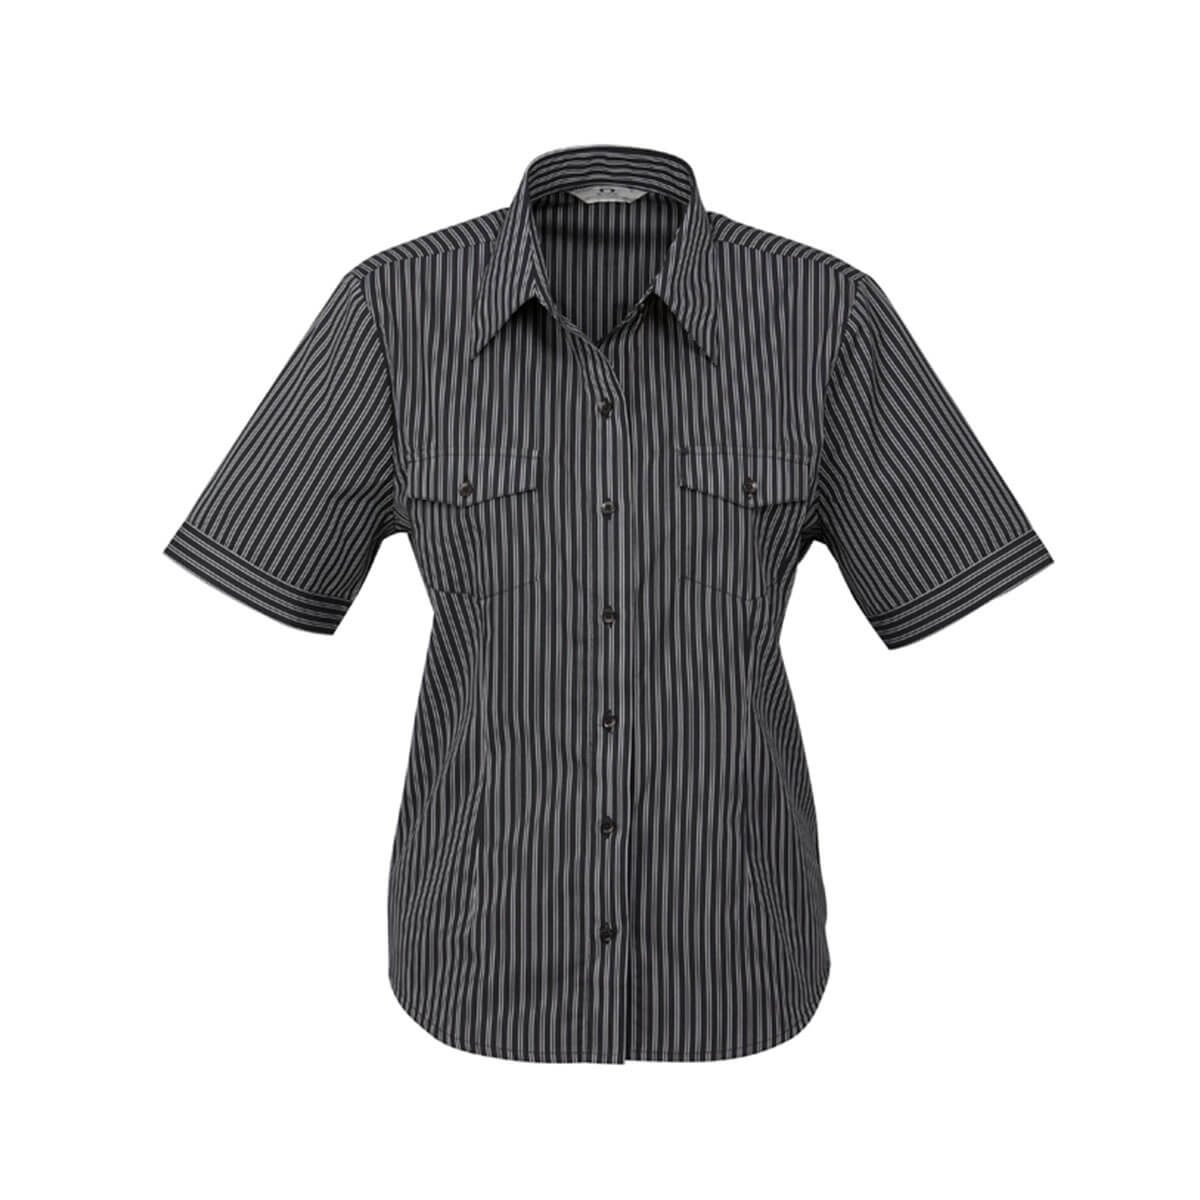 Ladies Cuban Short Sleeve Shirt-Black / Silver